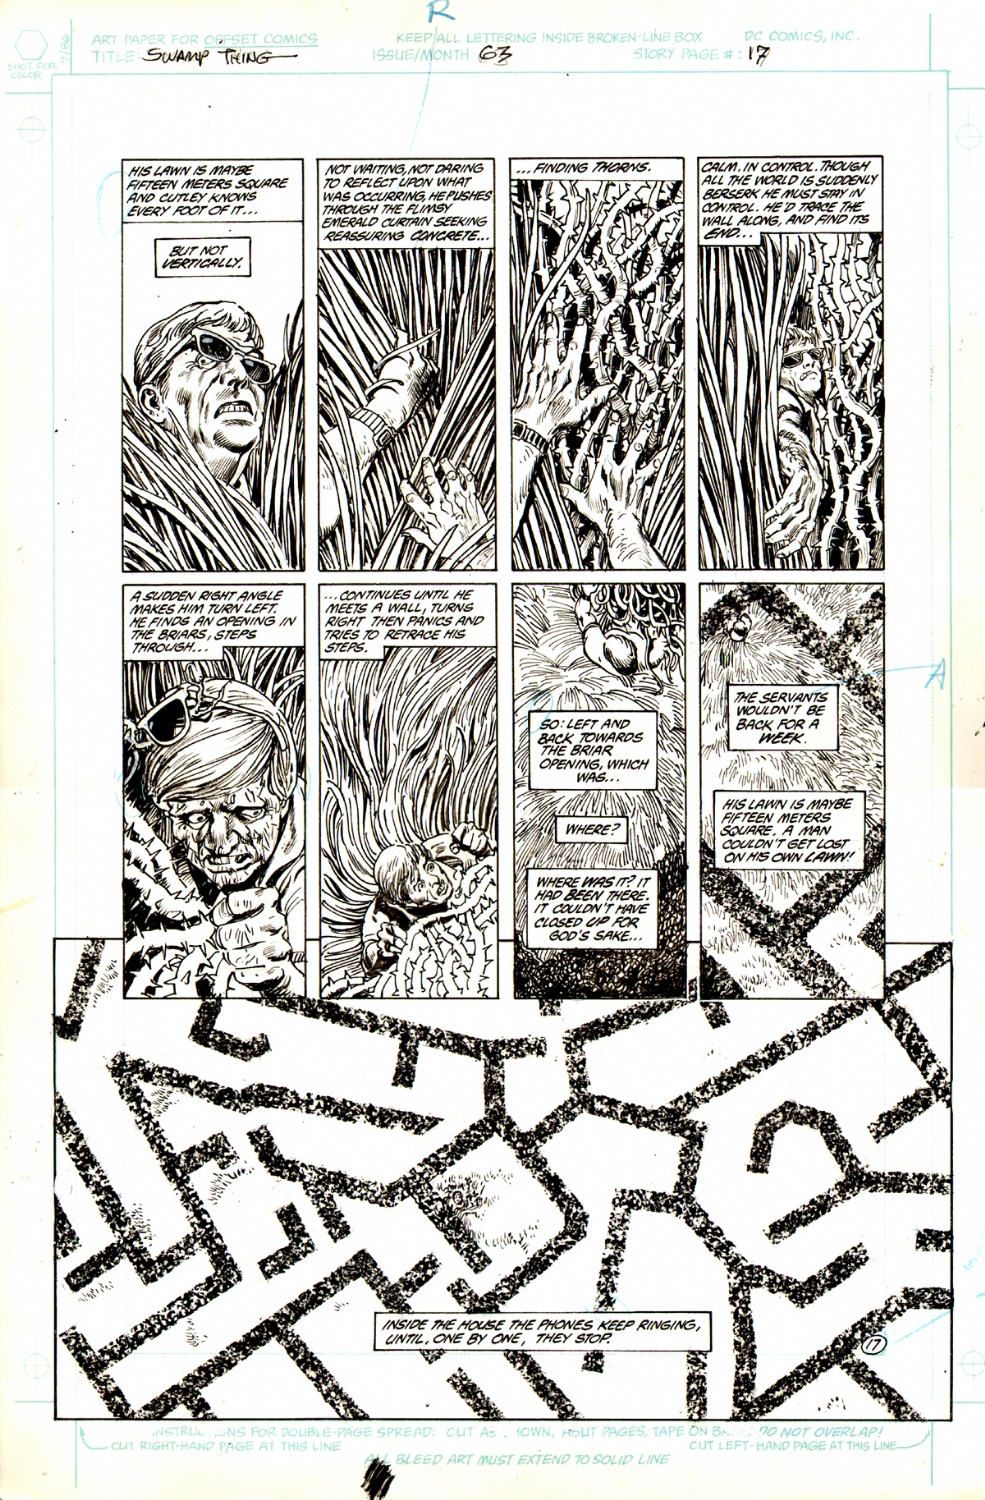 Swamp Thing #63 p 17 (Large Art) 1987